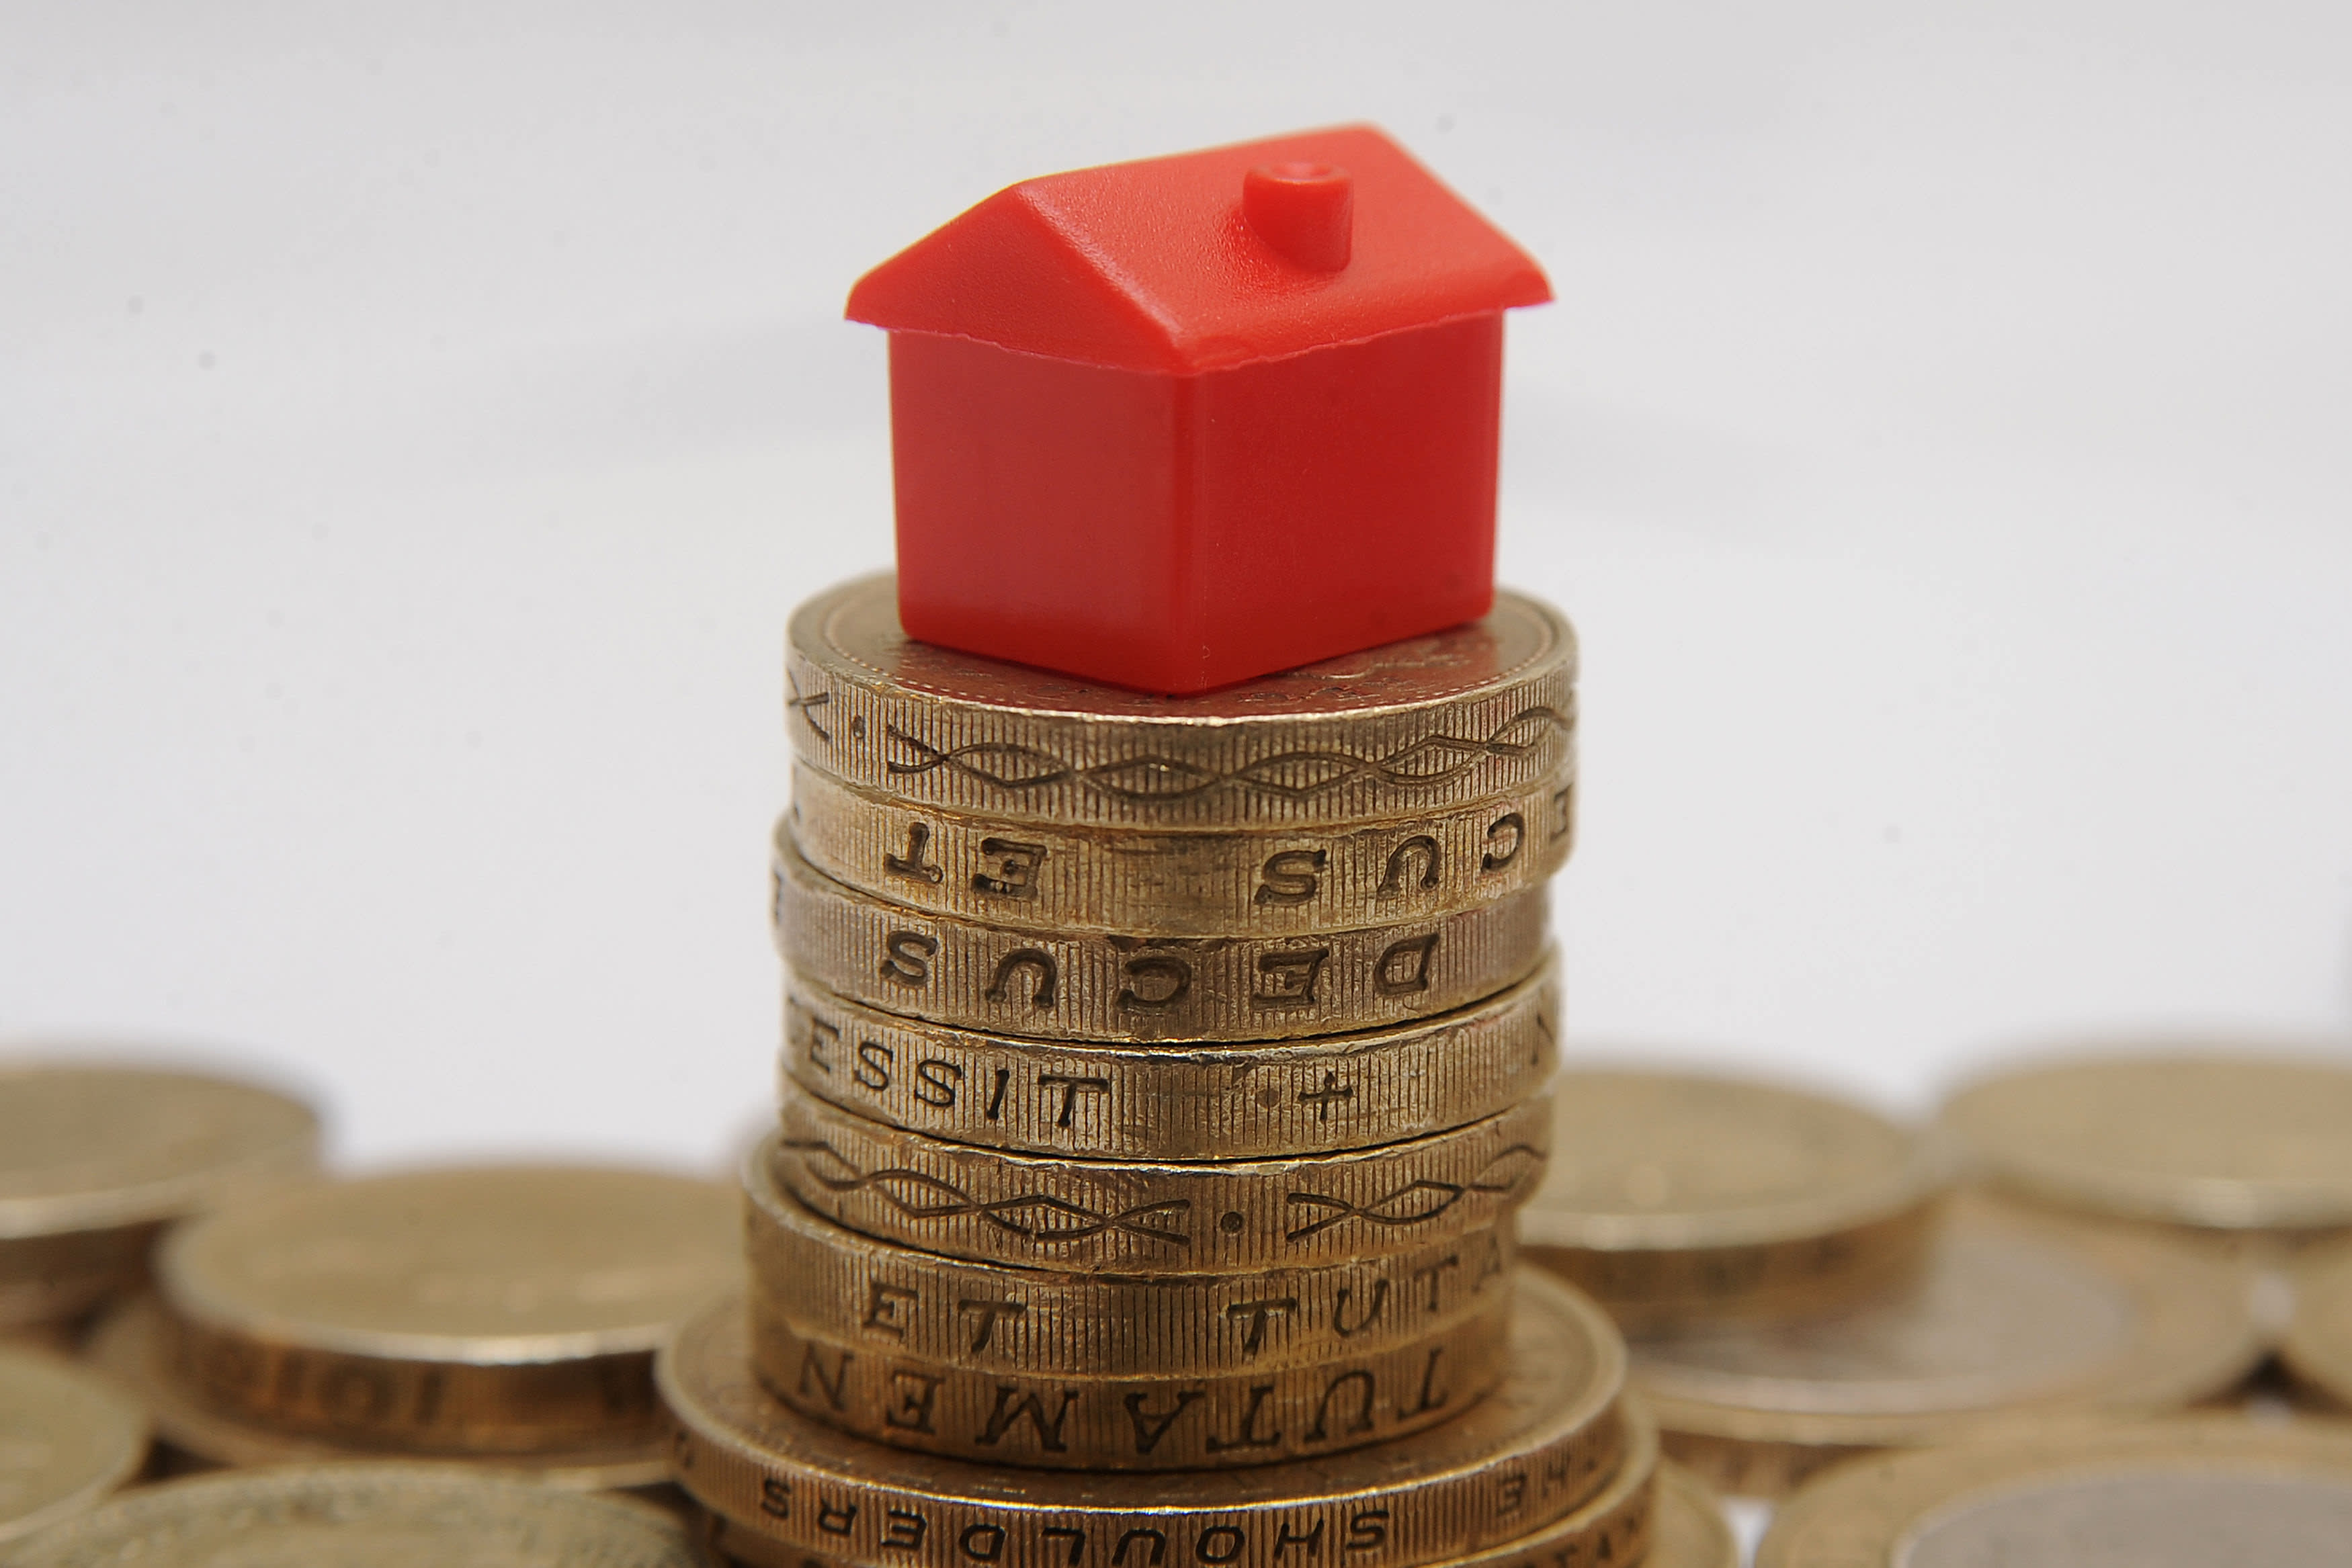 Abolish stamp duty to stimulate economy, IFS says